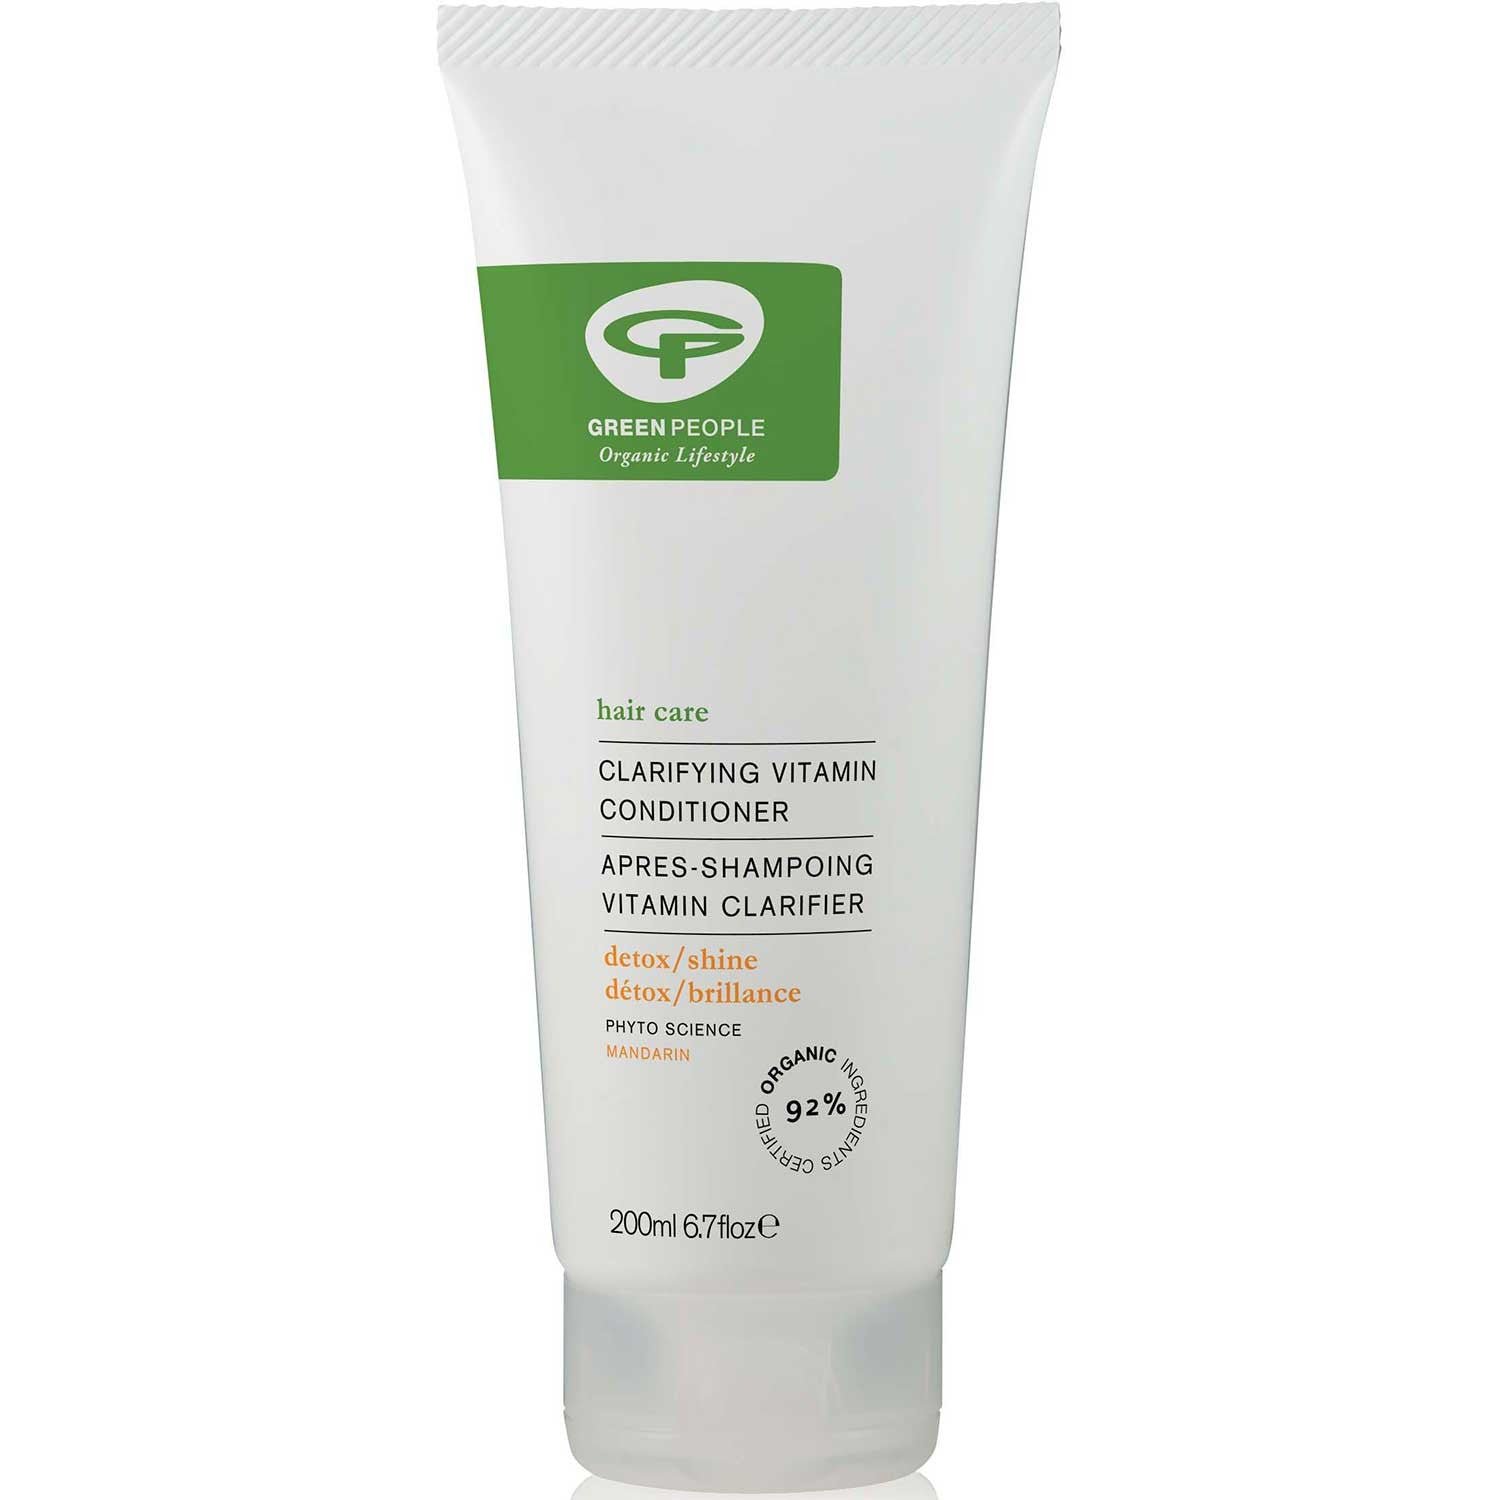 Green People Clarifying Vitamin Conditioner, 200 ml.-NaturesWisdom